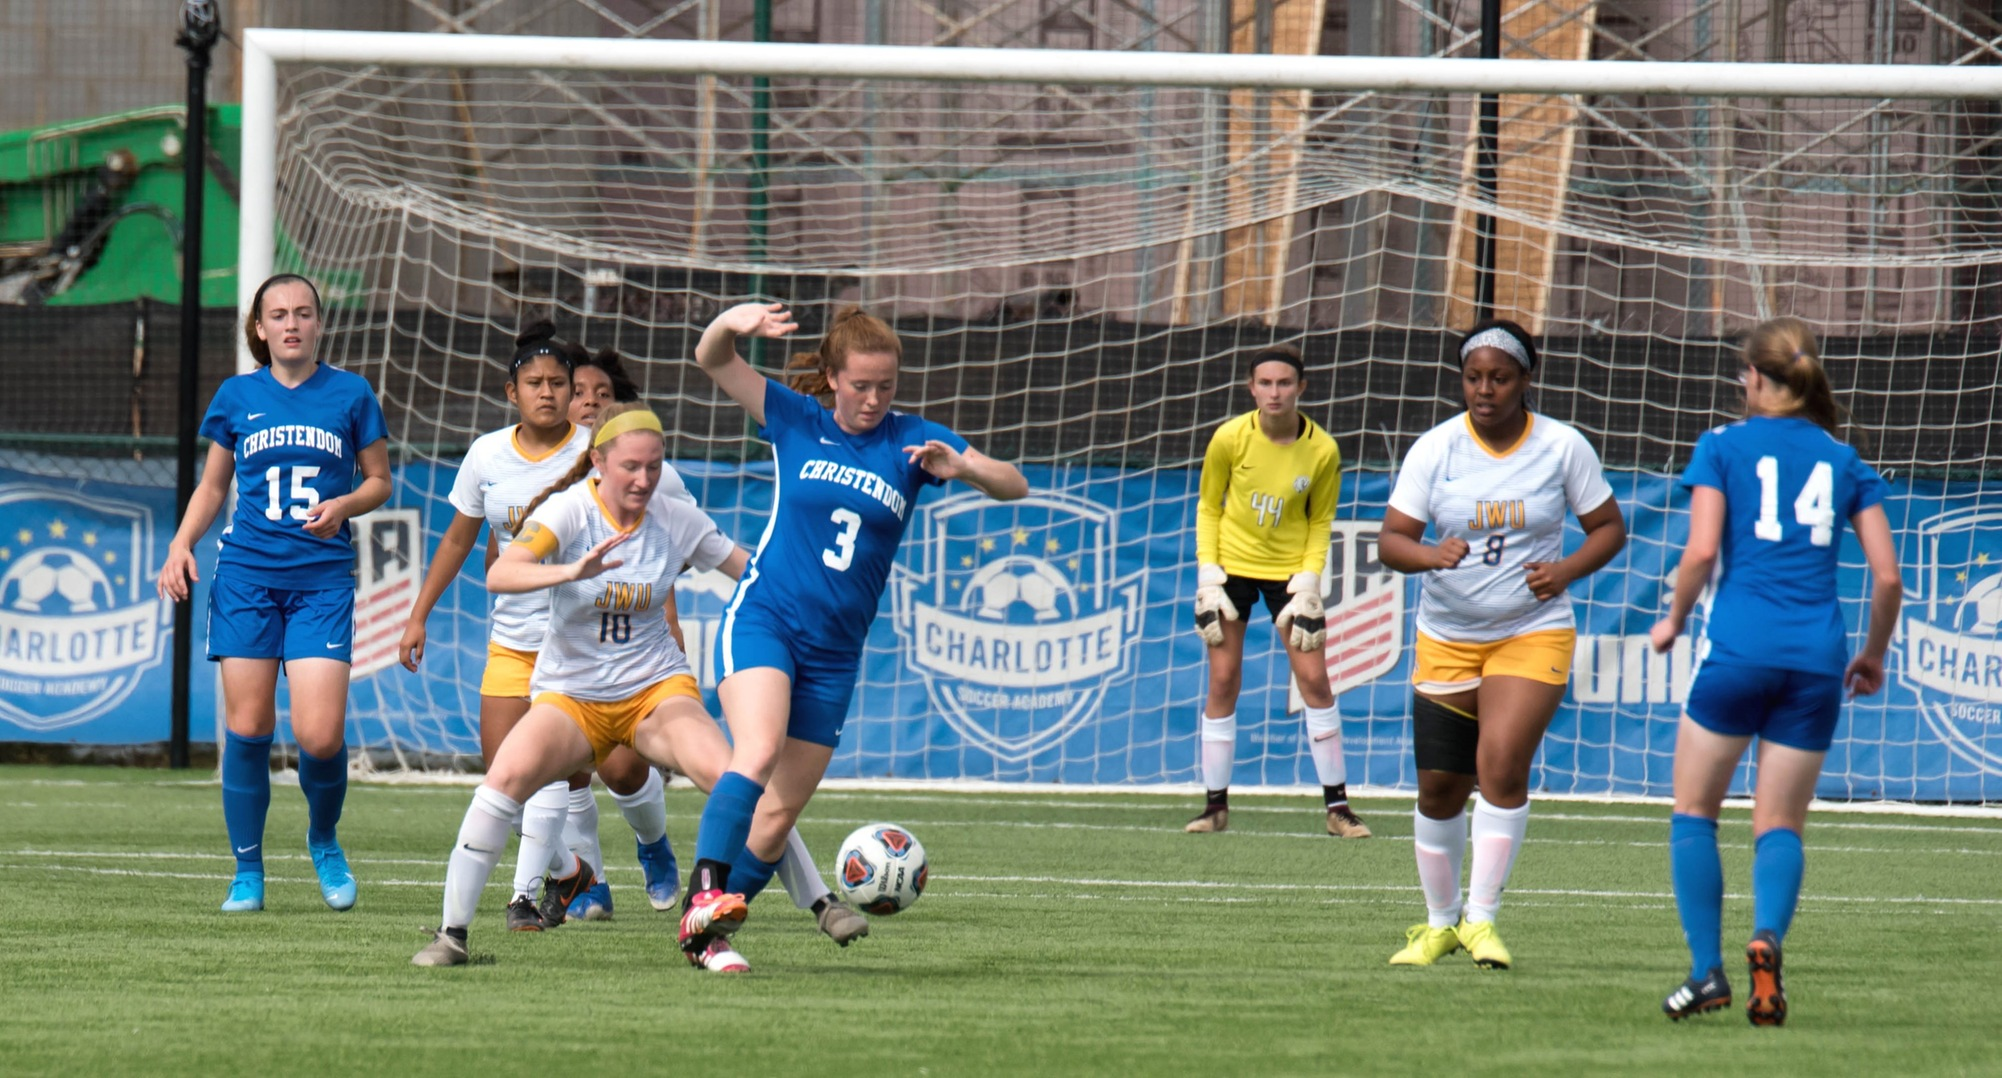 JWU Women's Soccer Announces Spring 2020 ID Clinic